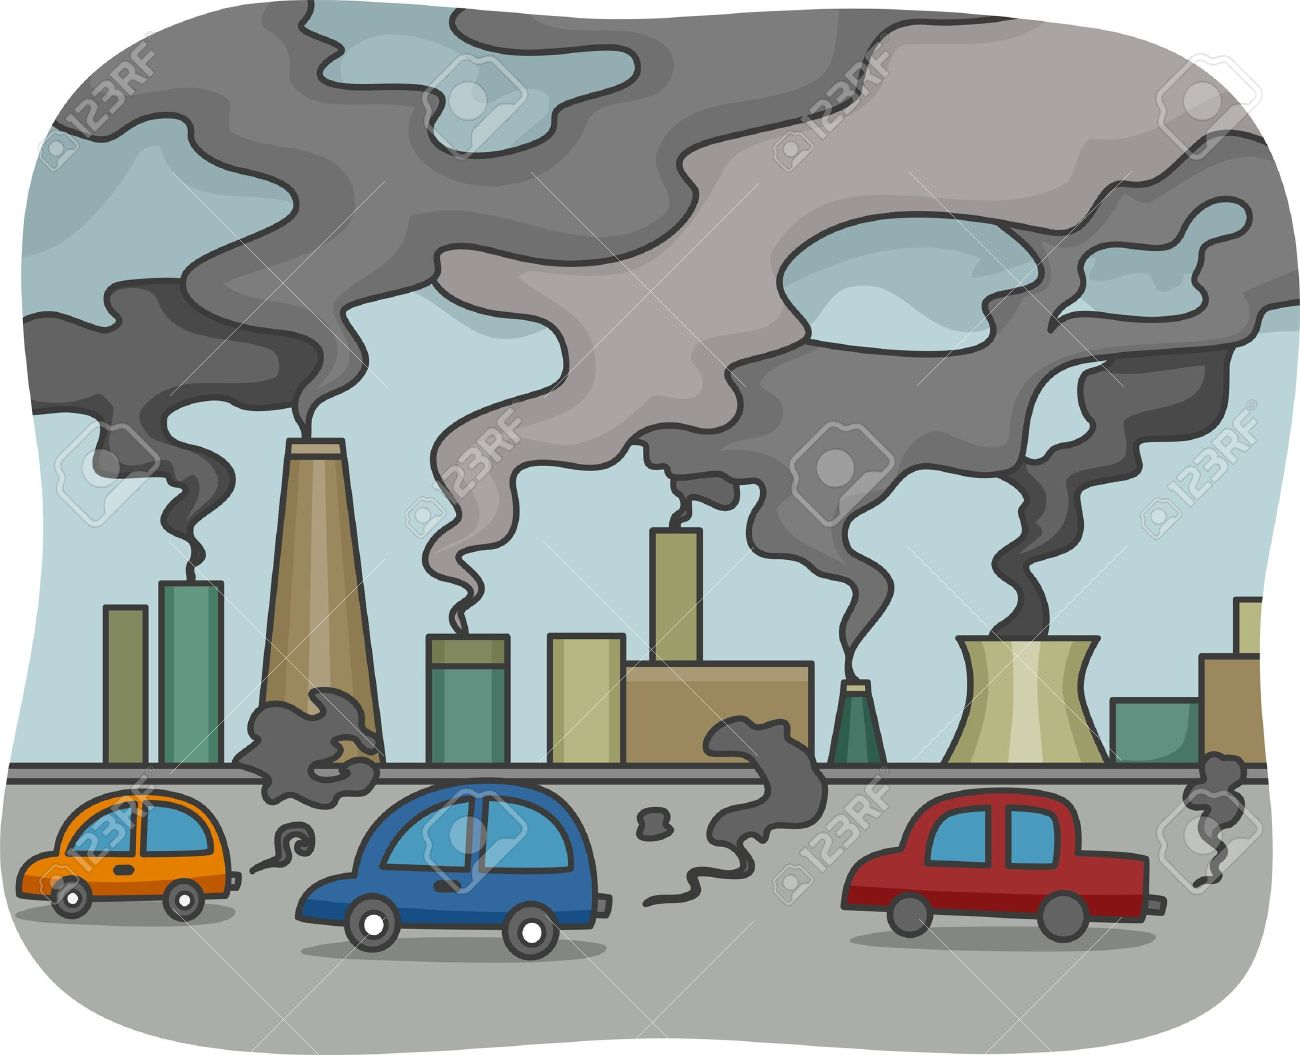 Cause of air pollution clipart.